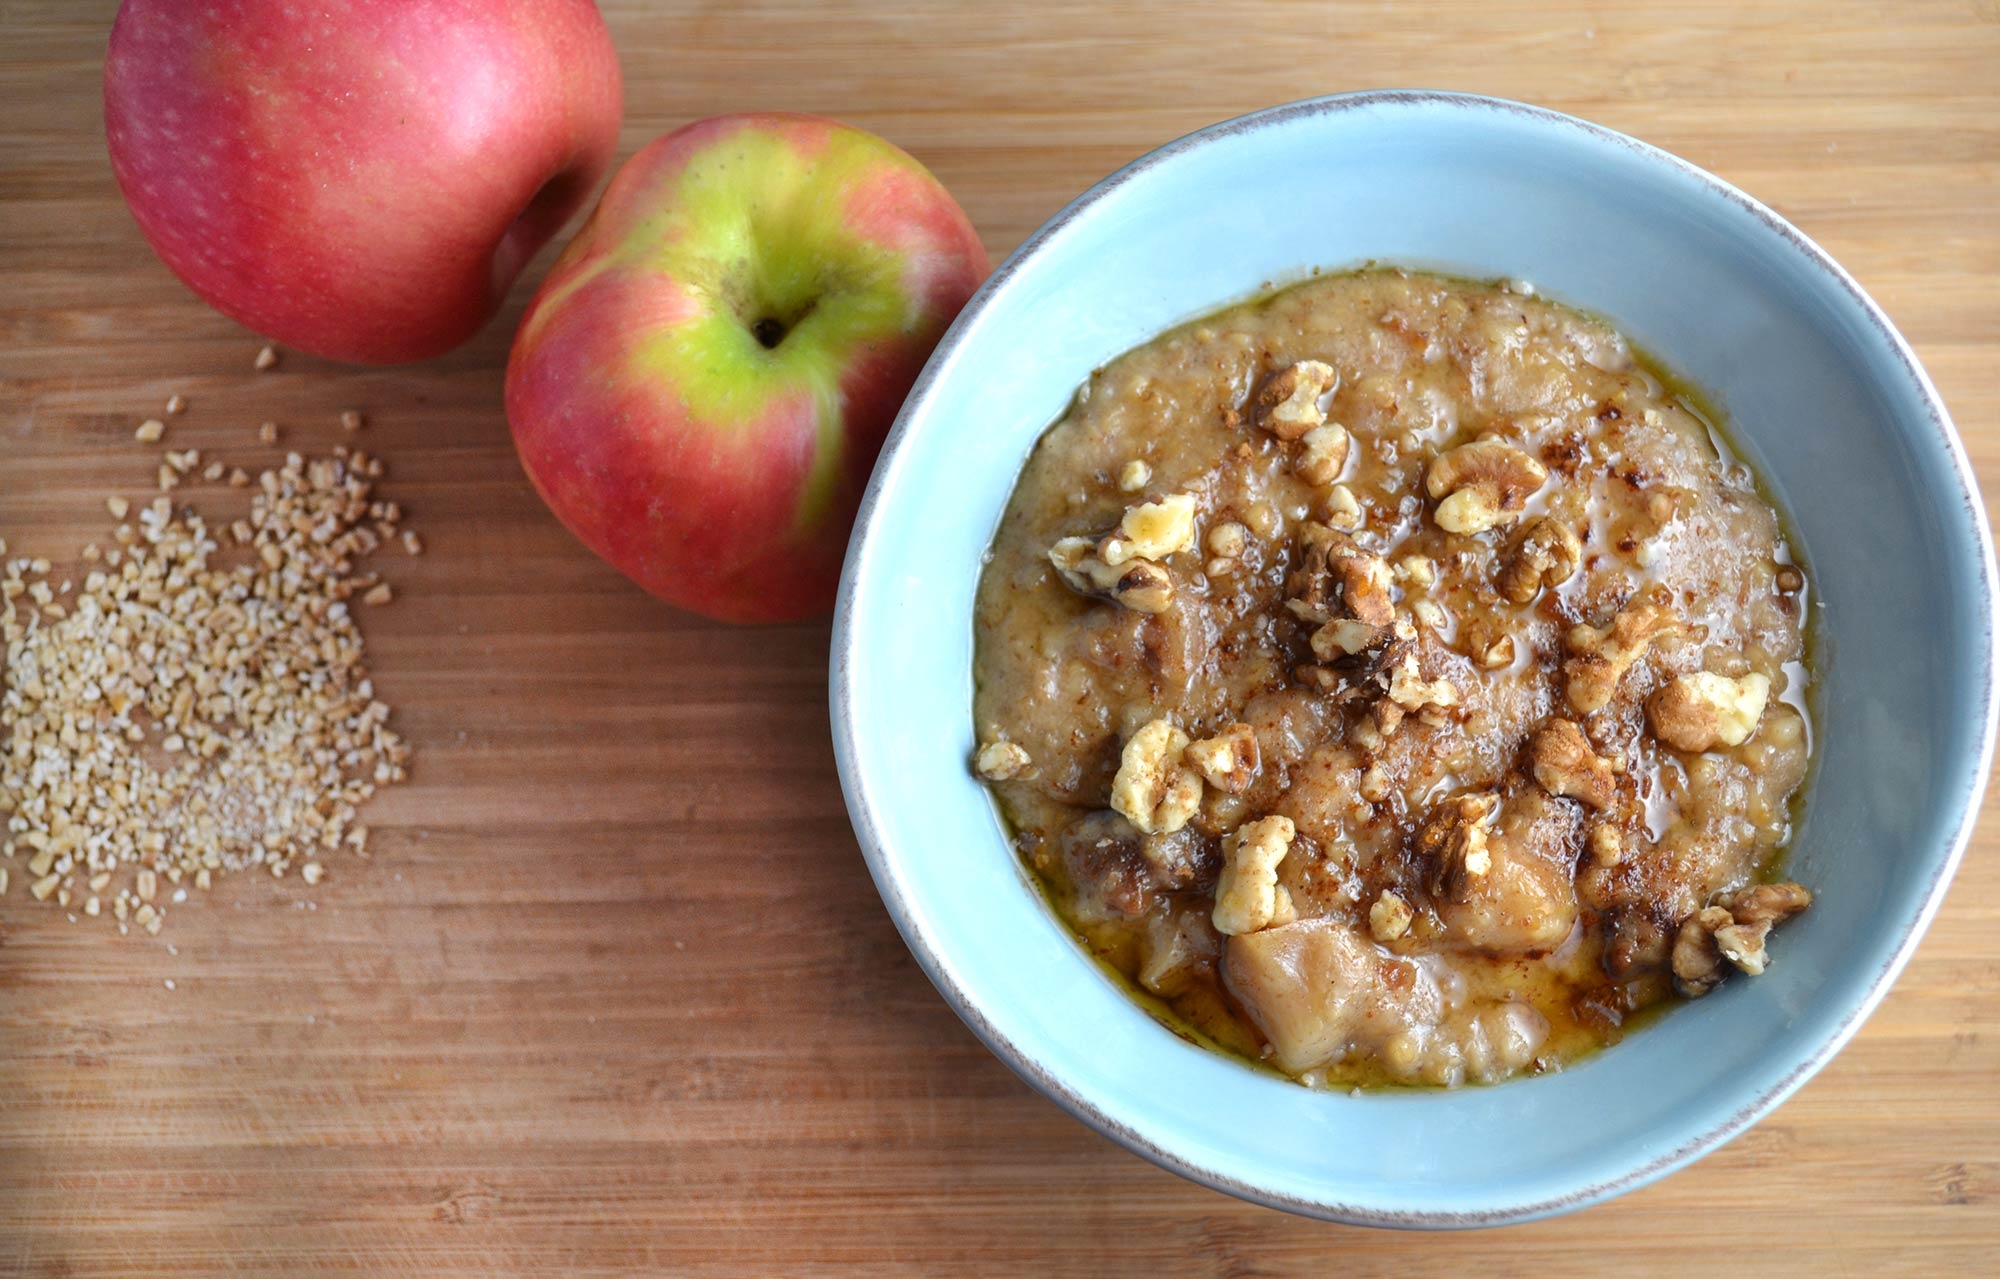 Crockpot Cinnamon Apple Oatmeal